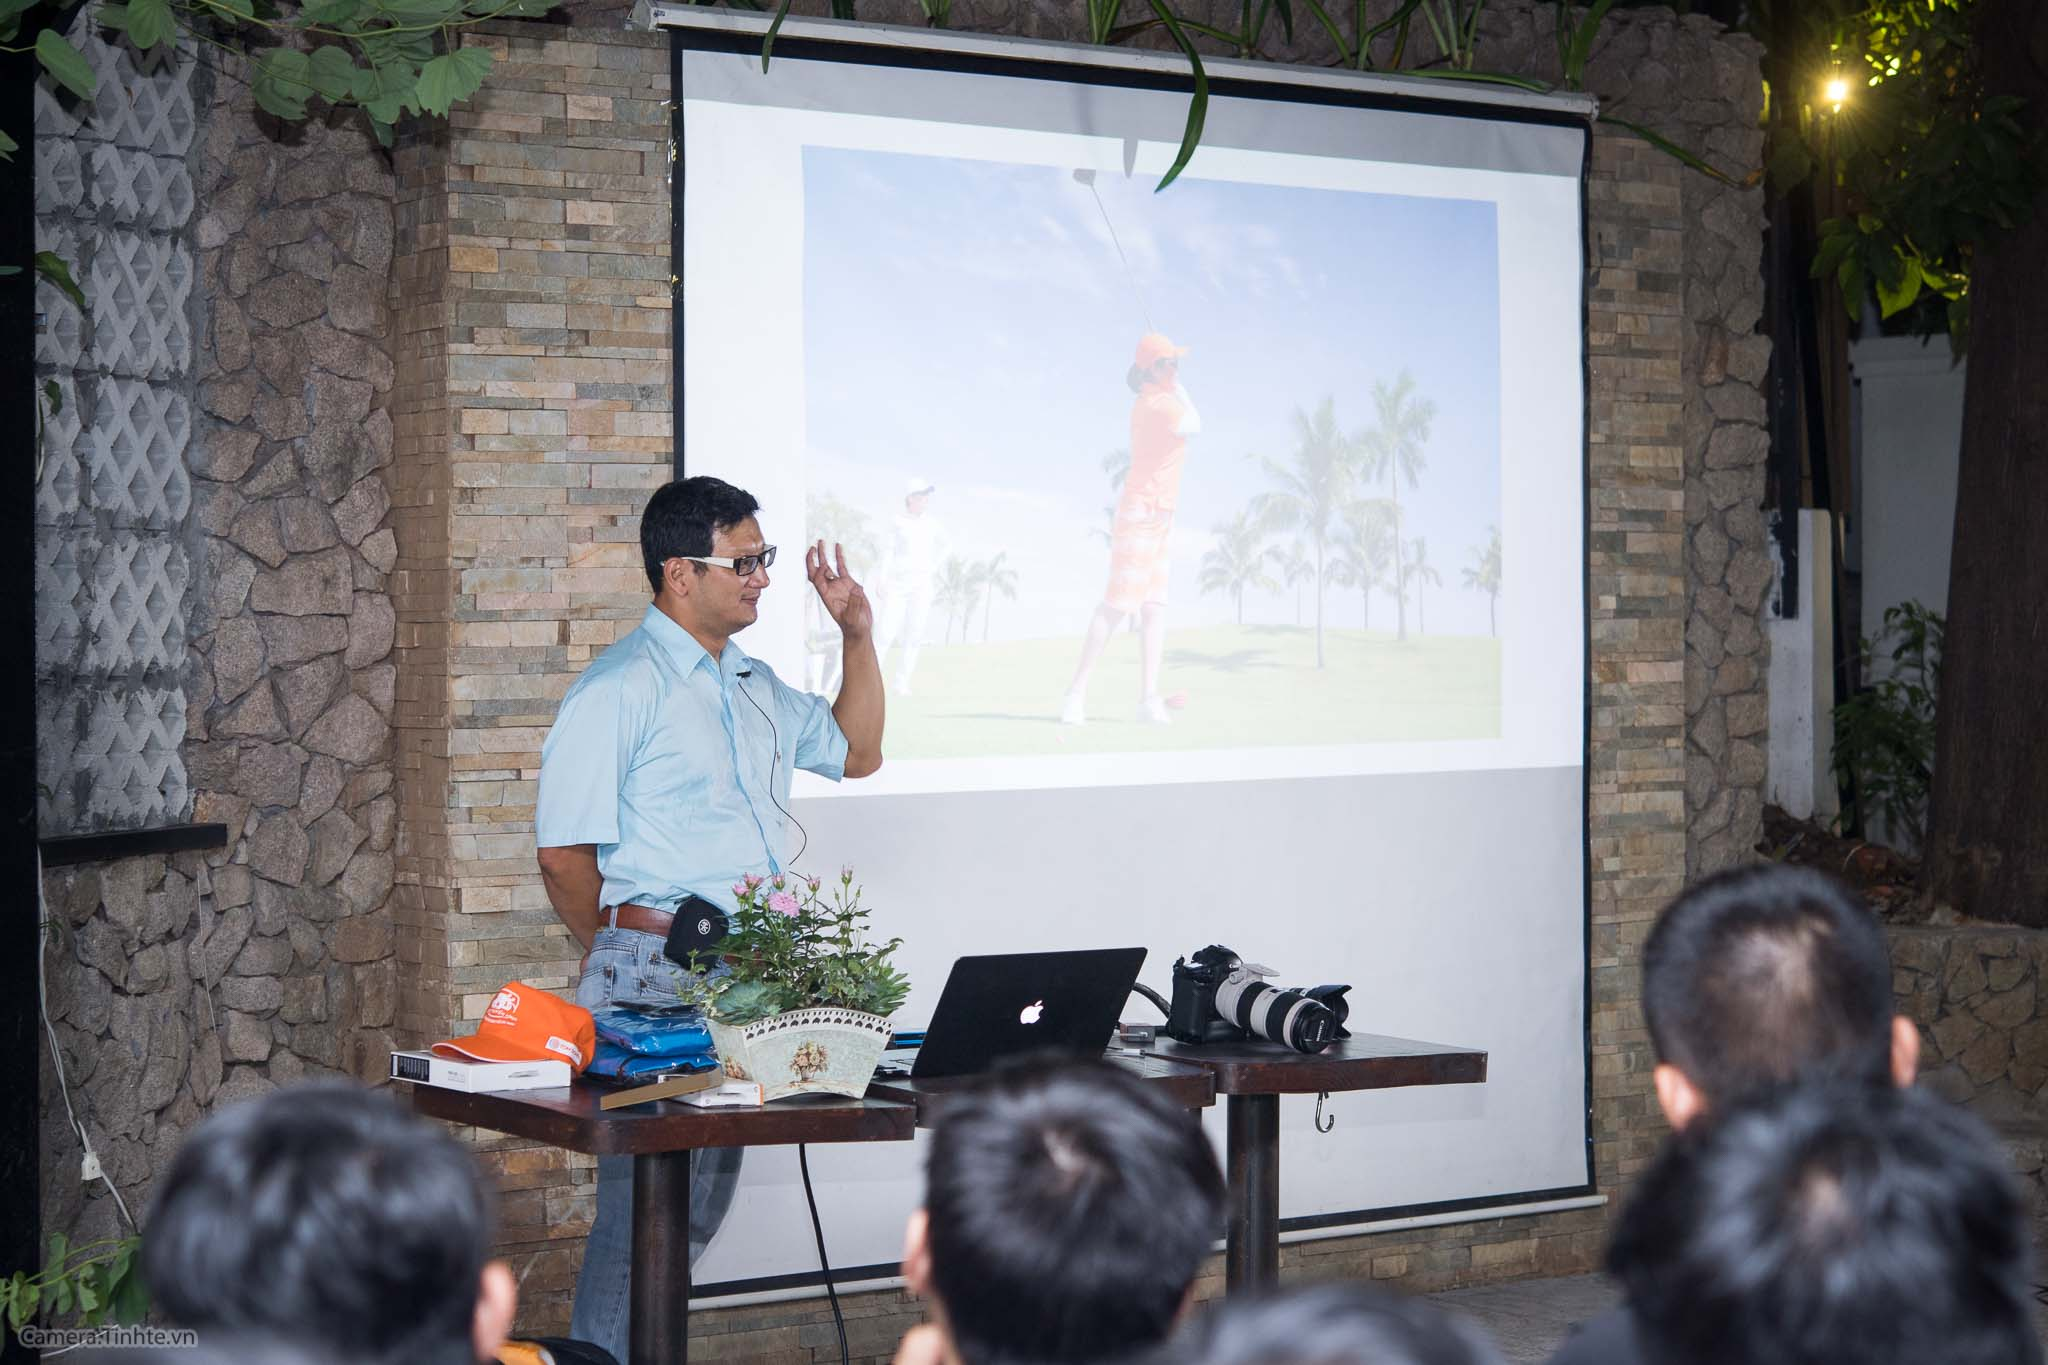 Workshop chup anh the thao - Camera.tinhte.vn-3.jpg